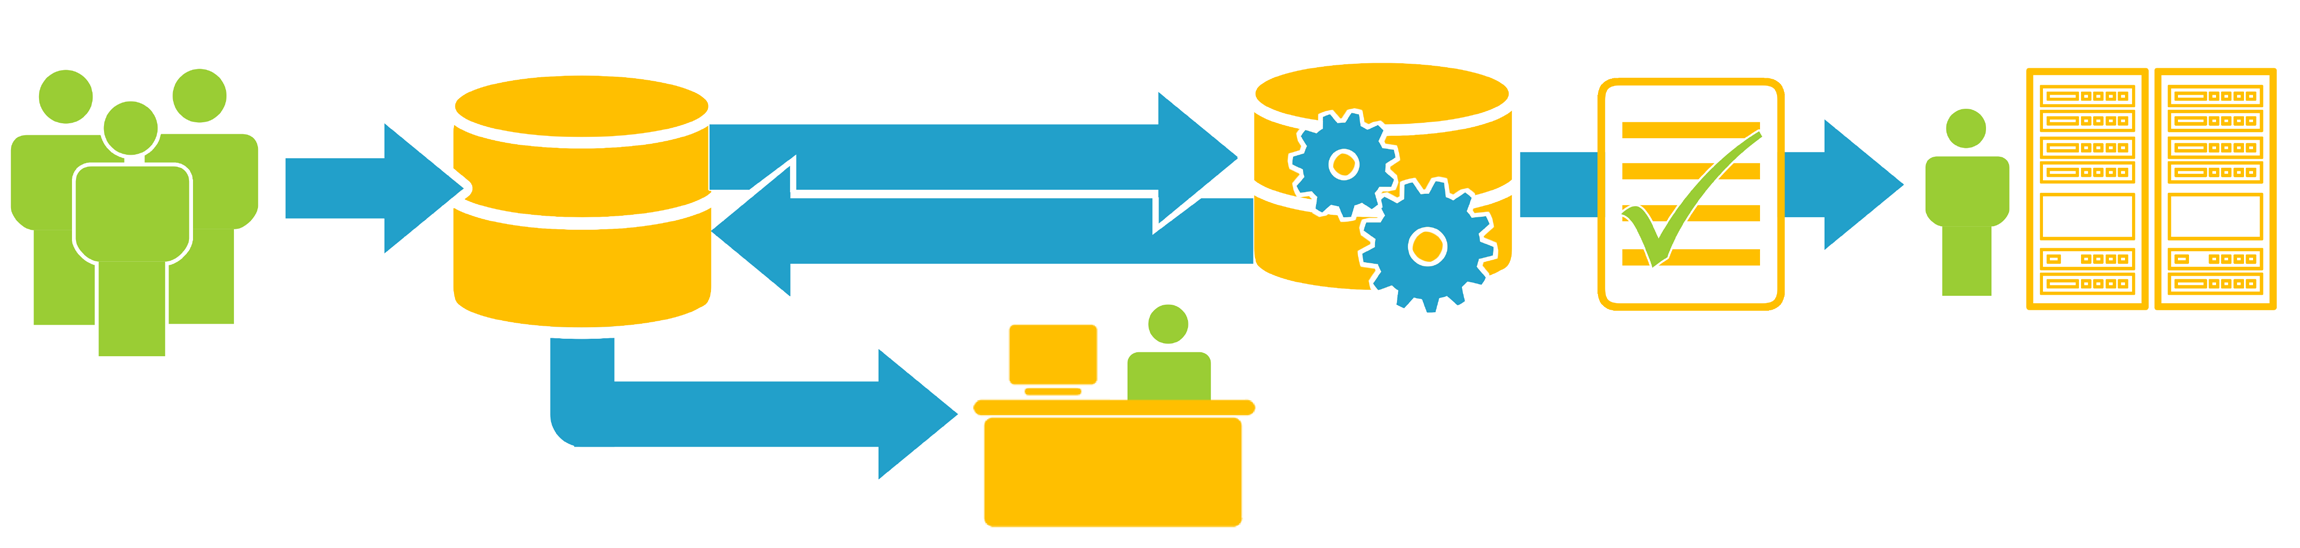 Benefits of Integrating ITSM and DCIM Several organizations are already integrating their Raritan DCIM software with their ITSM software and operational support elements, e.g. CMDB, Service Desk, change ticketing systems, and workflow engines.